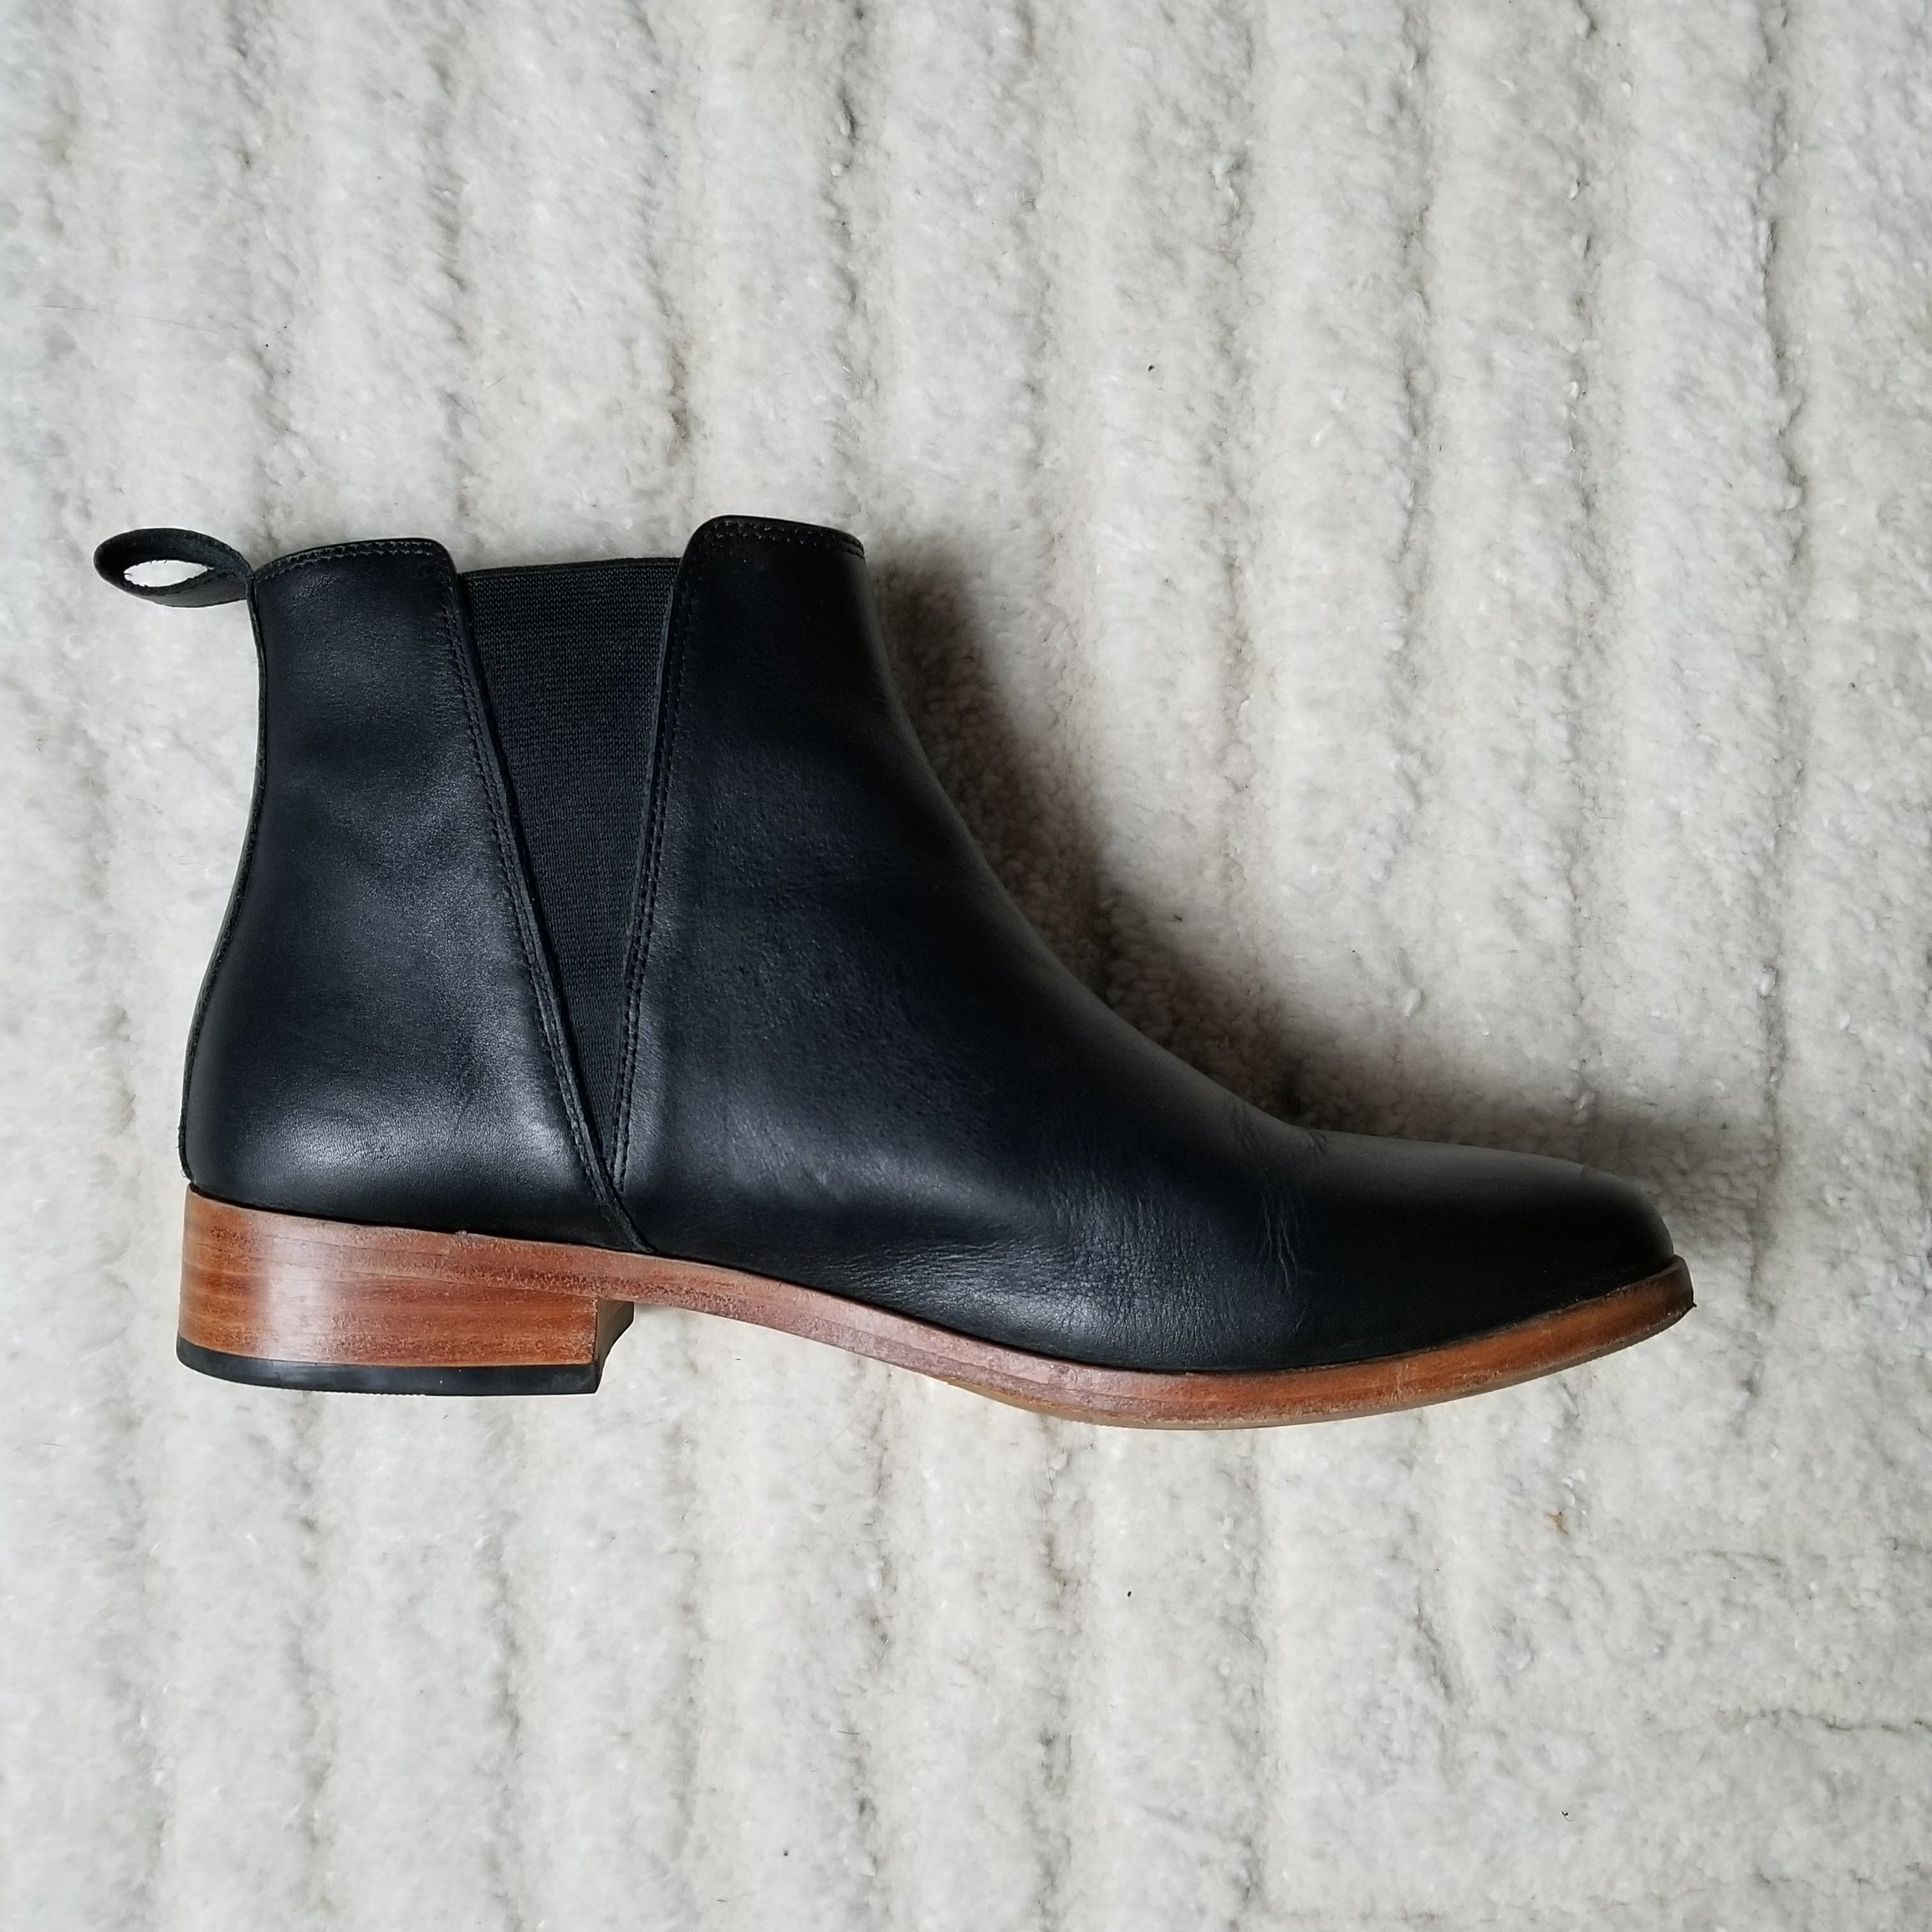 Nisolo chelsea boot  in black/brown